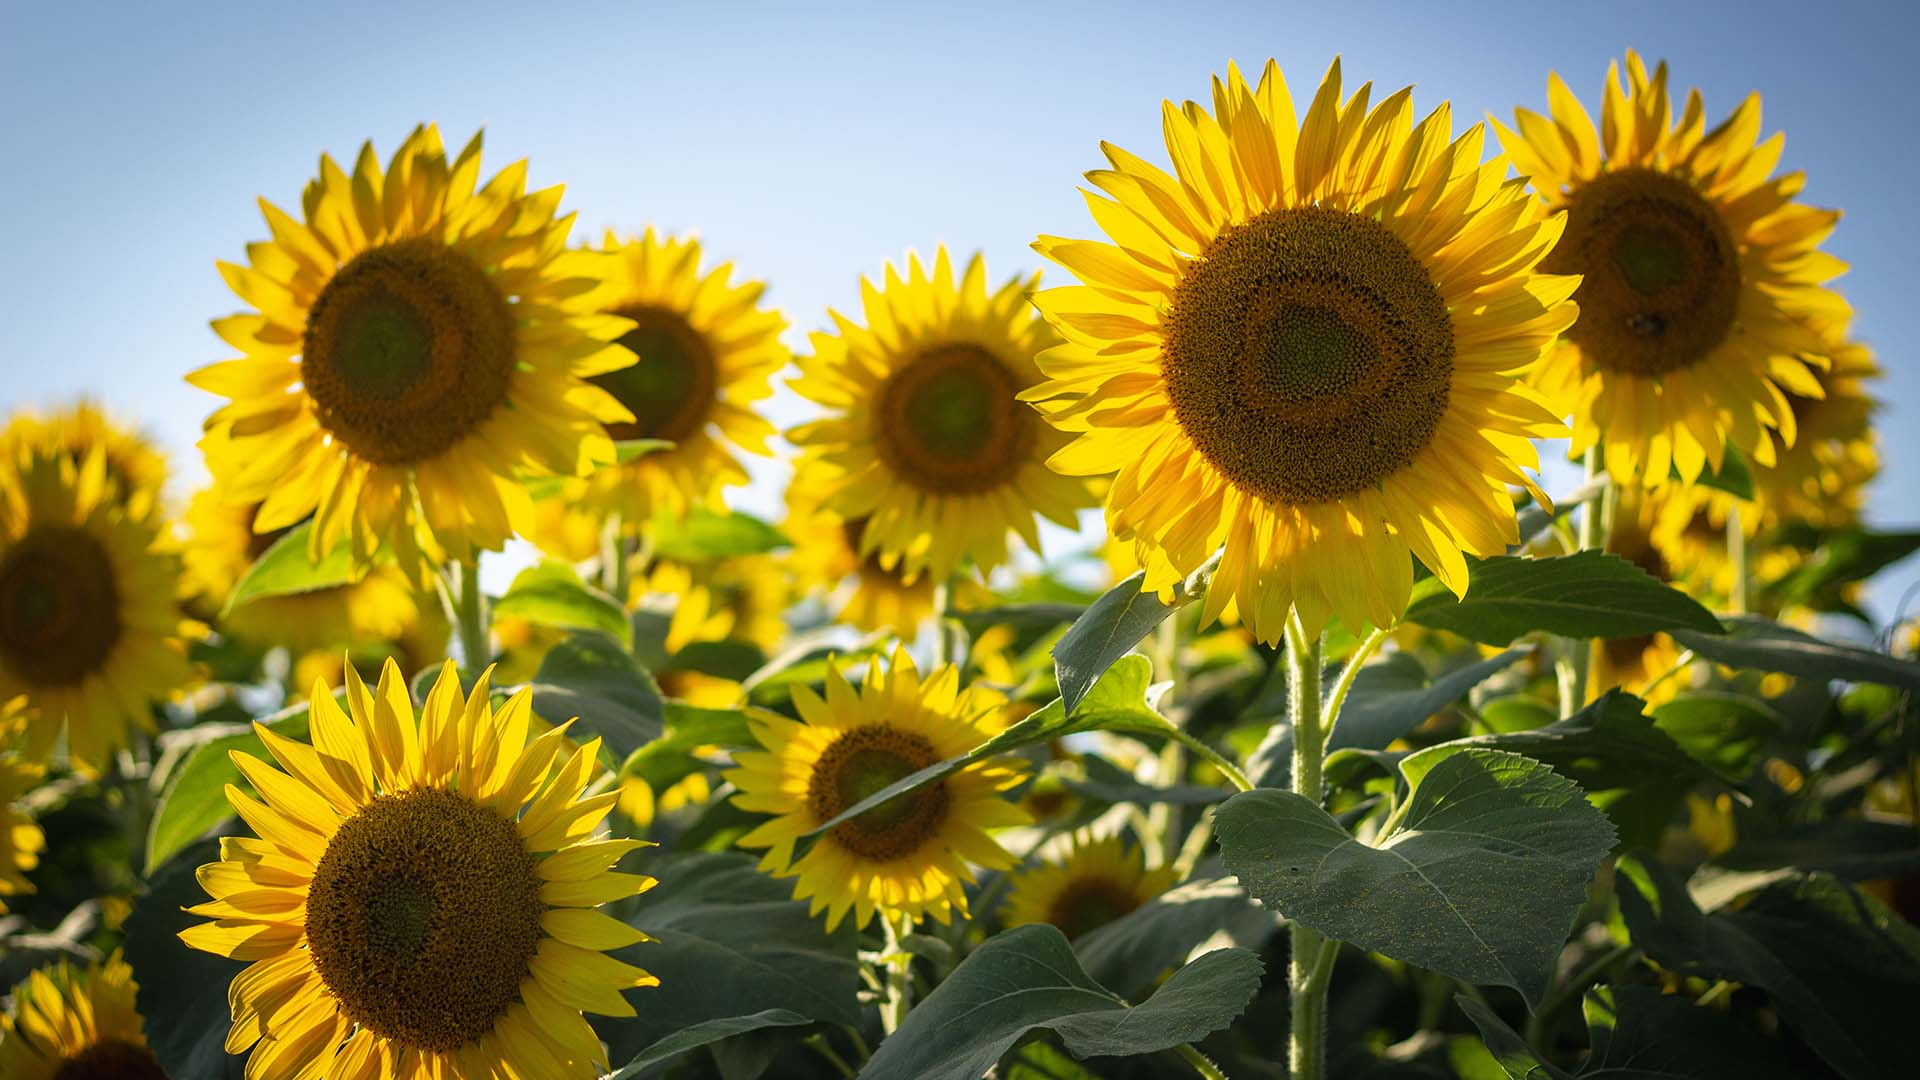 This New Scenic Rim Festival Will Let You Wander Through More Than 200,000 Sunflowers